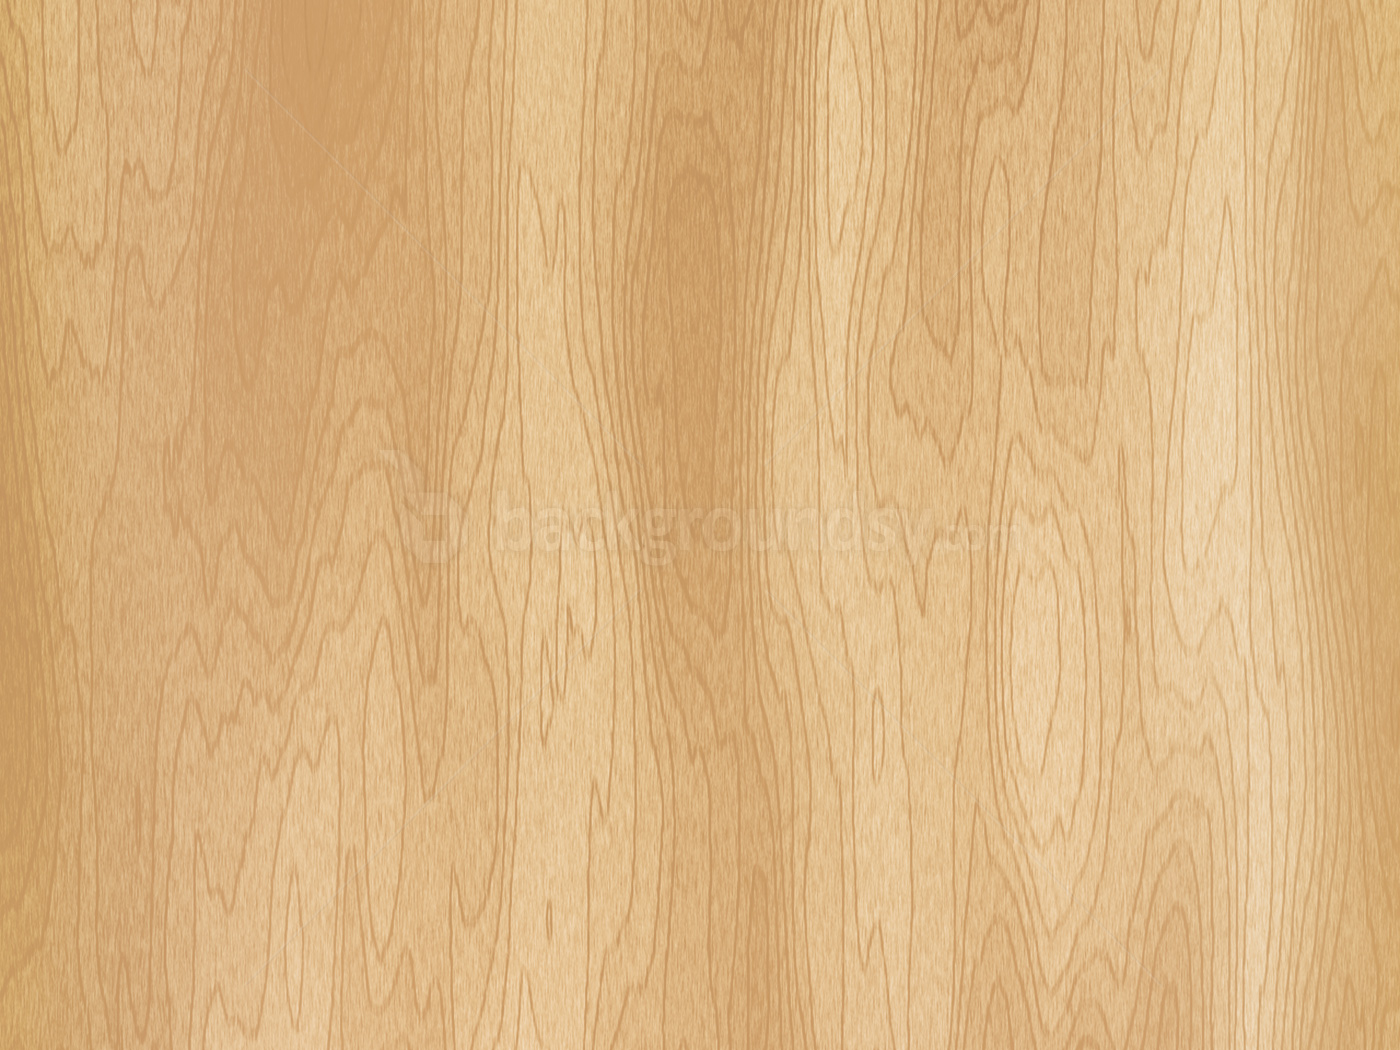 Wood grain background - Wood design image ...